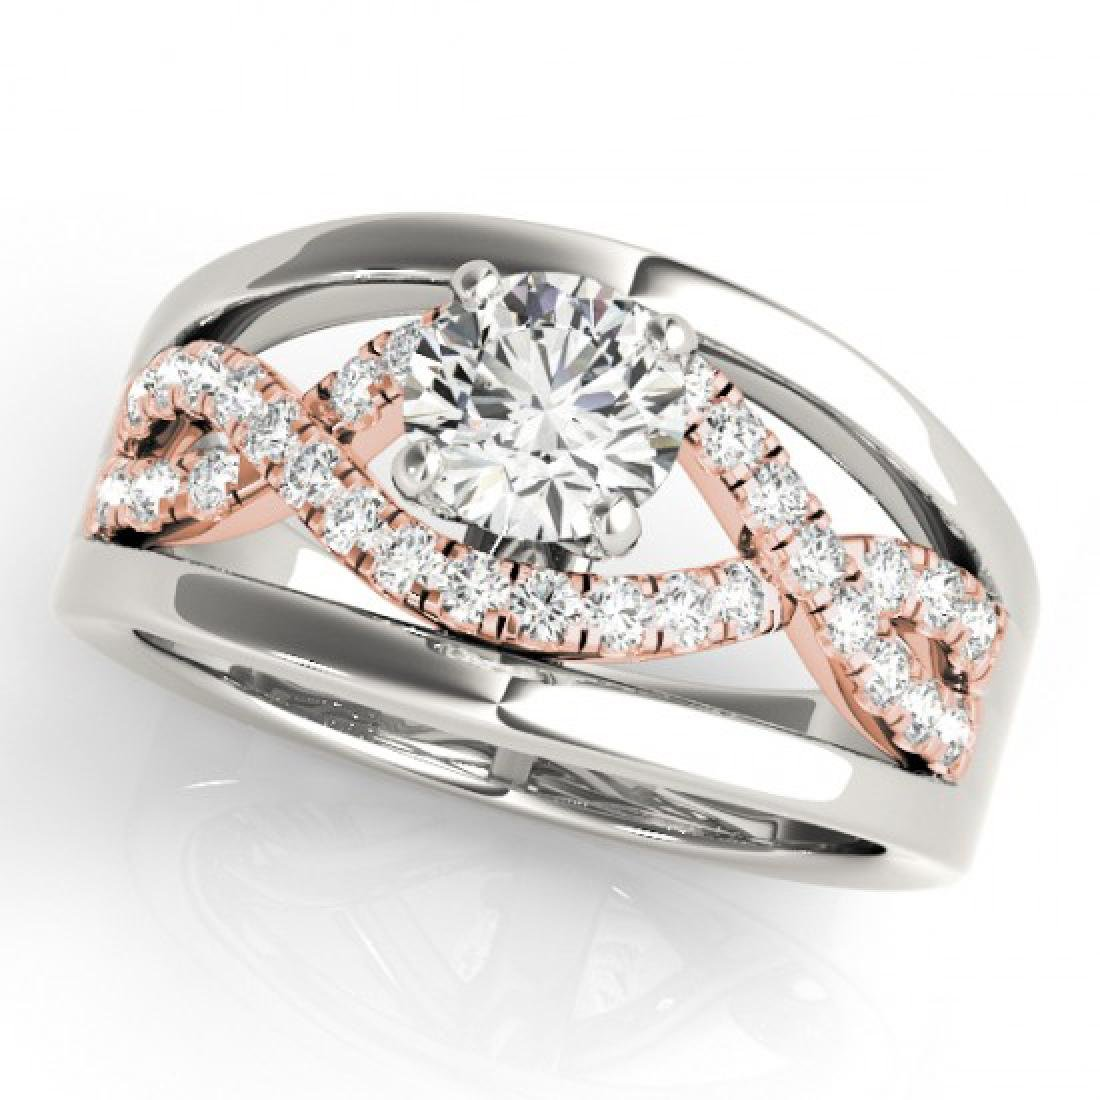 1.3 CTW Certified VS/SI Diamond Solitaire Ring 14K